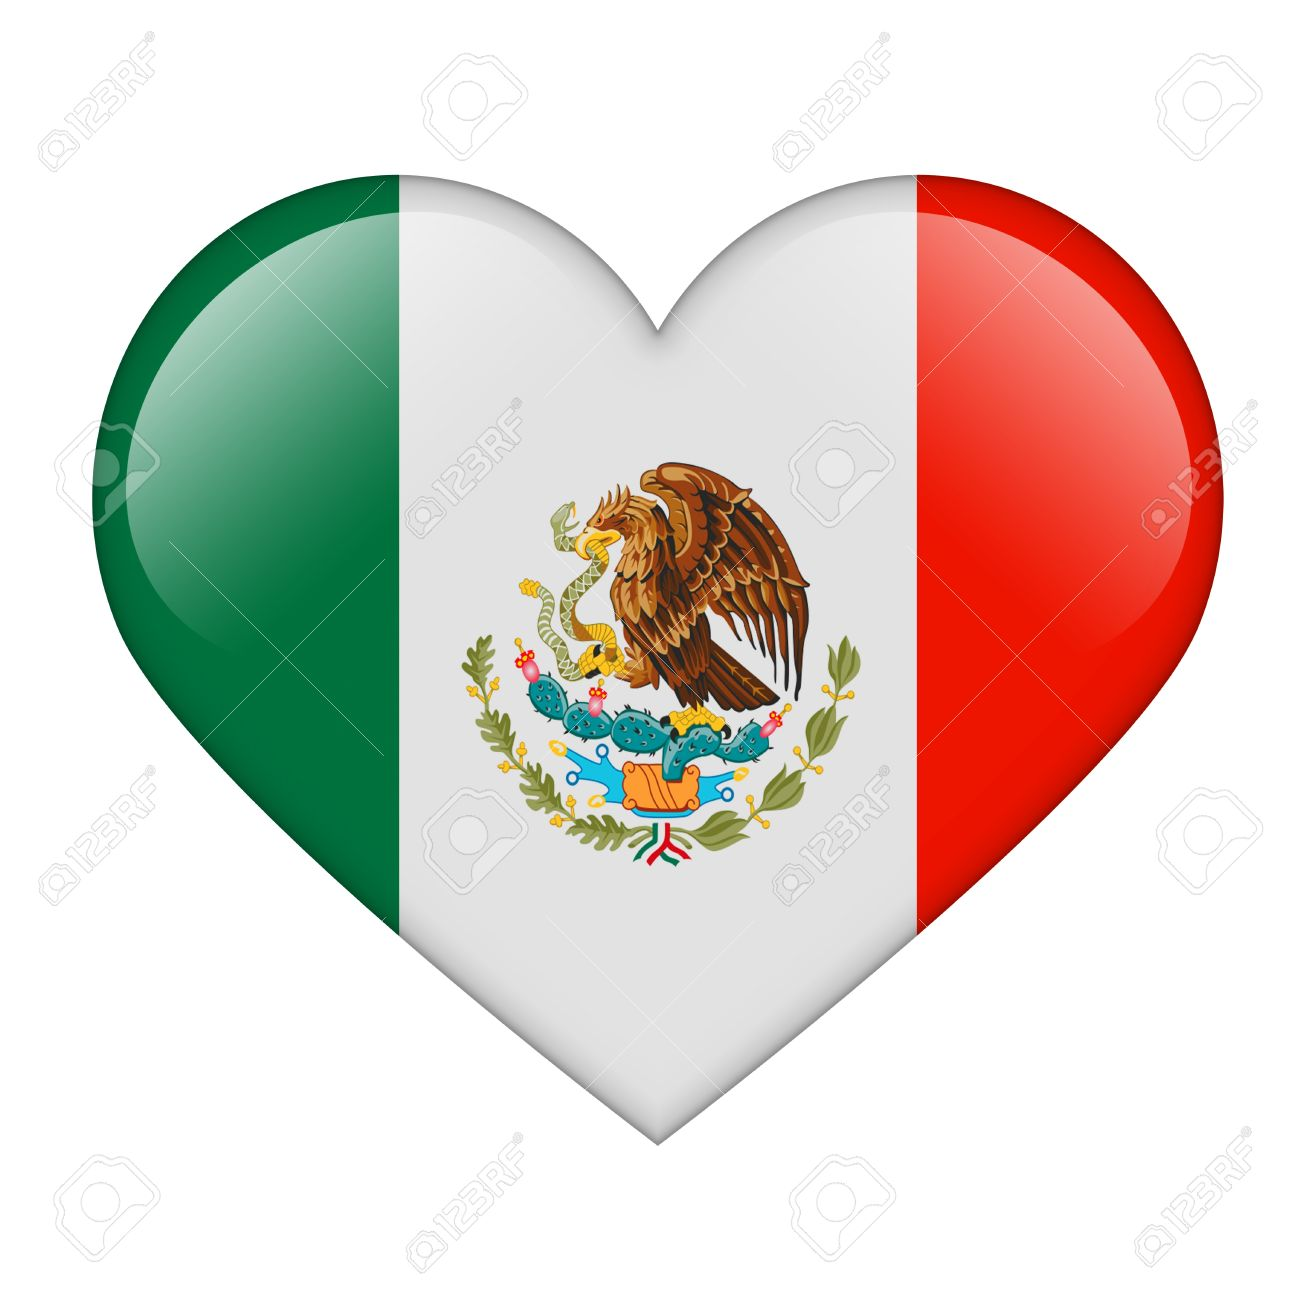 PM´s Prediction Game Season VIII | year 2016 - Page 2 17476758-The-Mexican-flag-in-the-form-of-a-glossy-heart-Stock-Photo-mexico